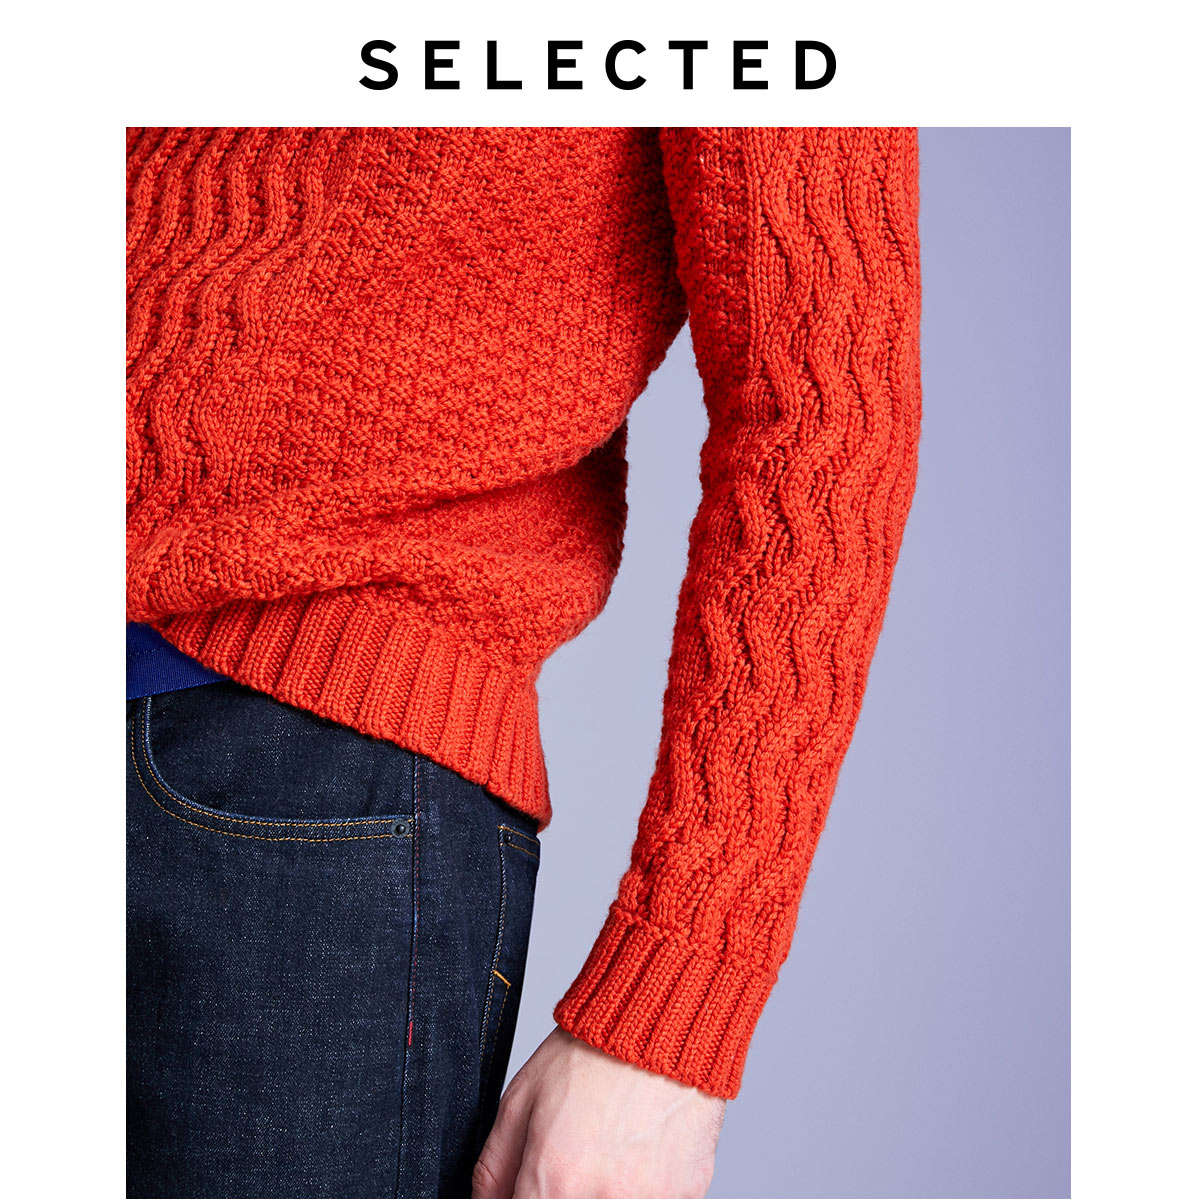 Image 4 - SELECTED Men's Autumn & Winter High necked Woolen Knitted Sweater L419424551-in Pullovers from Men's Clothing